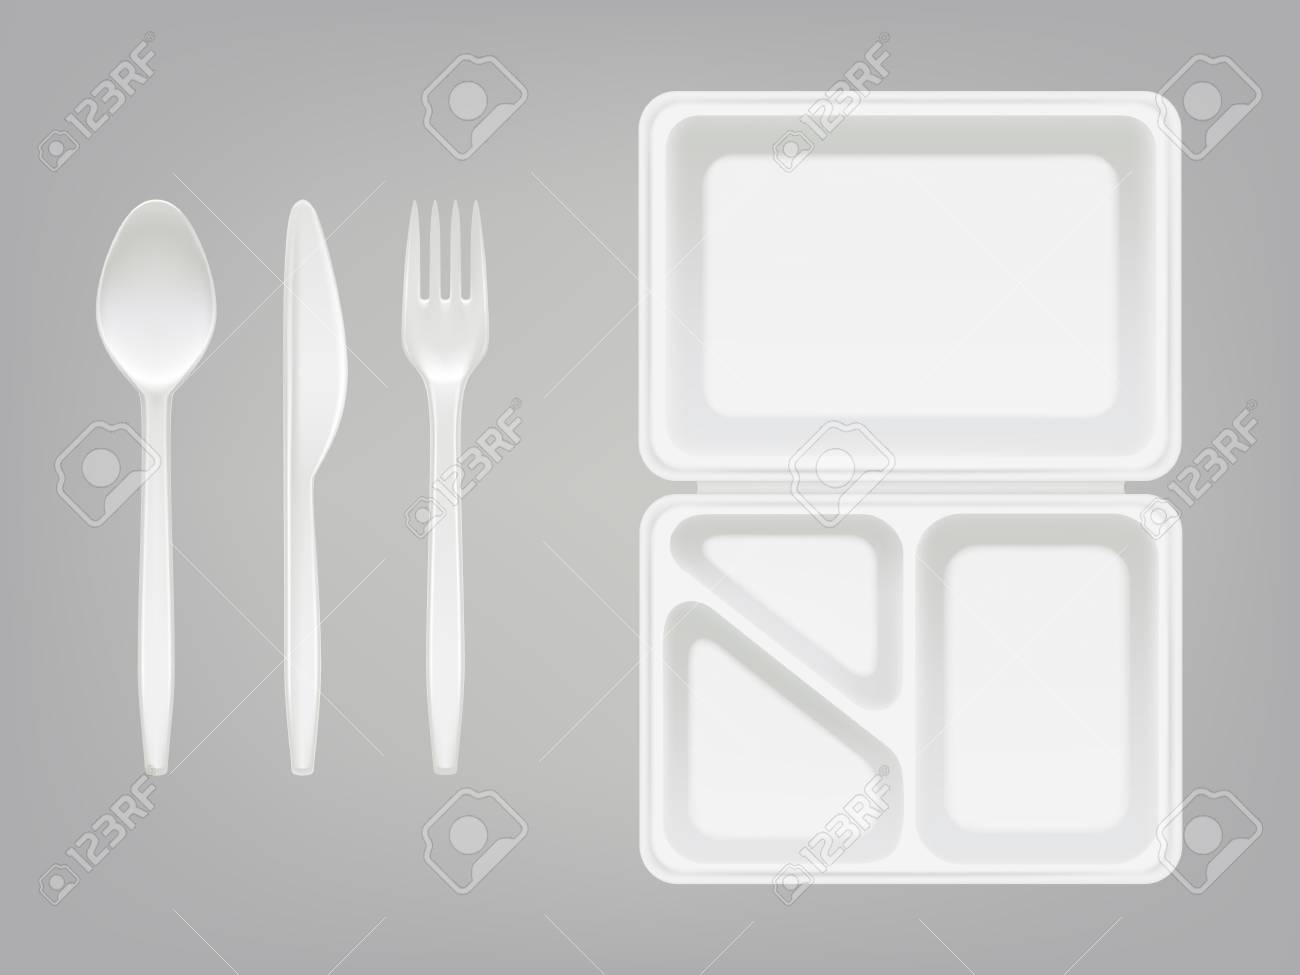 Disposable Plastic Lunch Box And Cutlery Vector Illustration